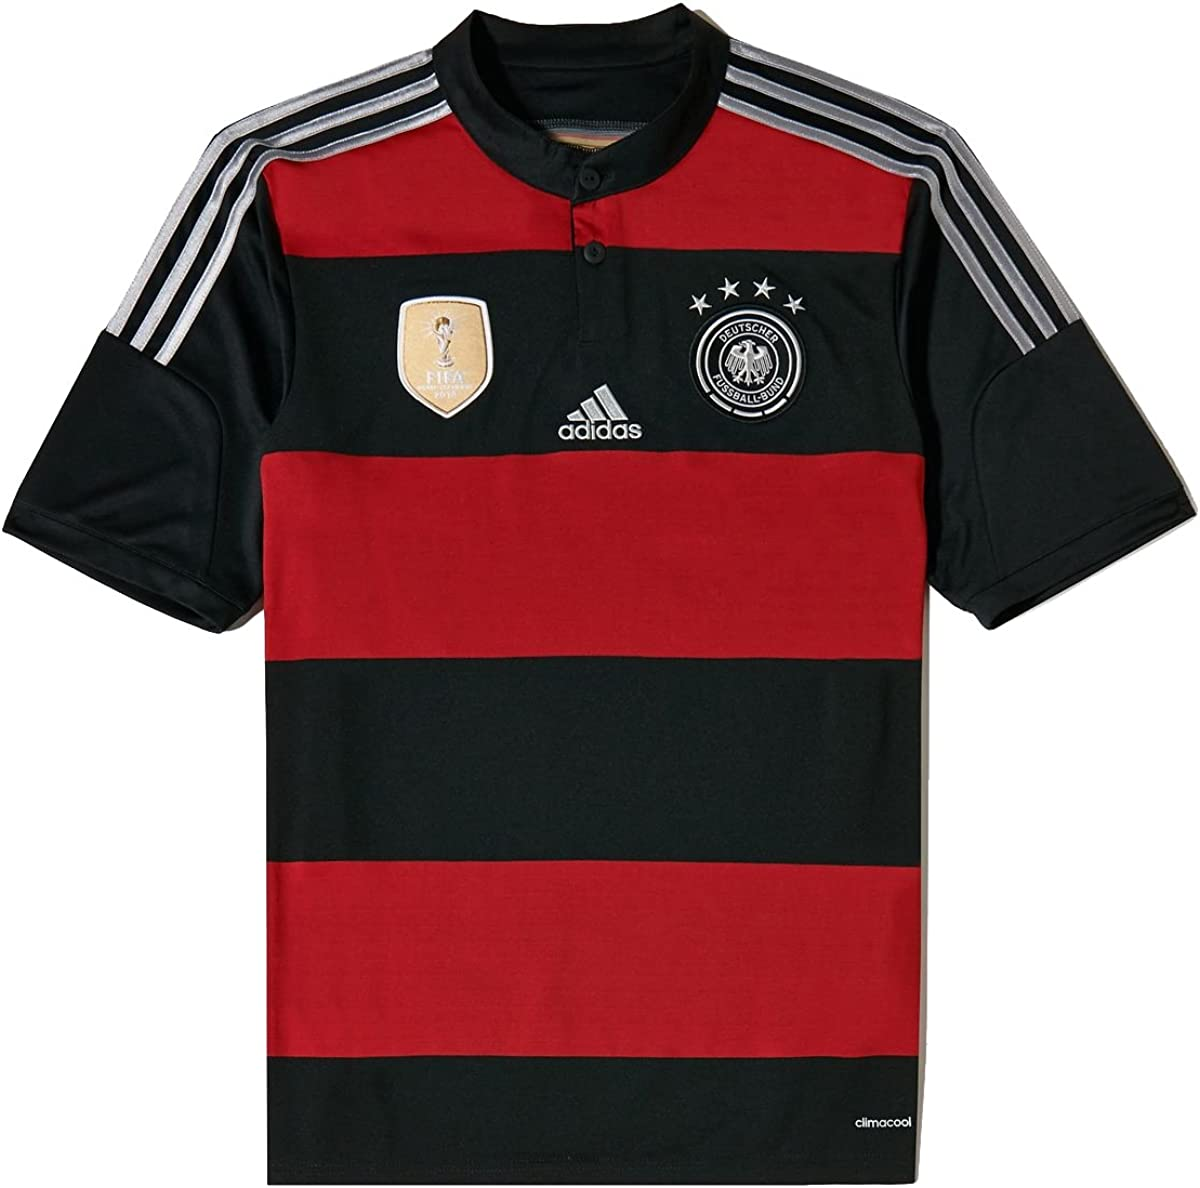 adidas Germany Away Youth Soccer Jersey (XL) Red/Black